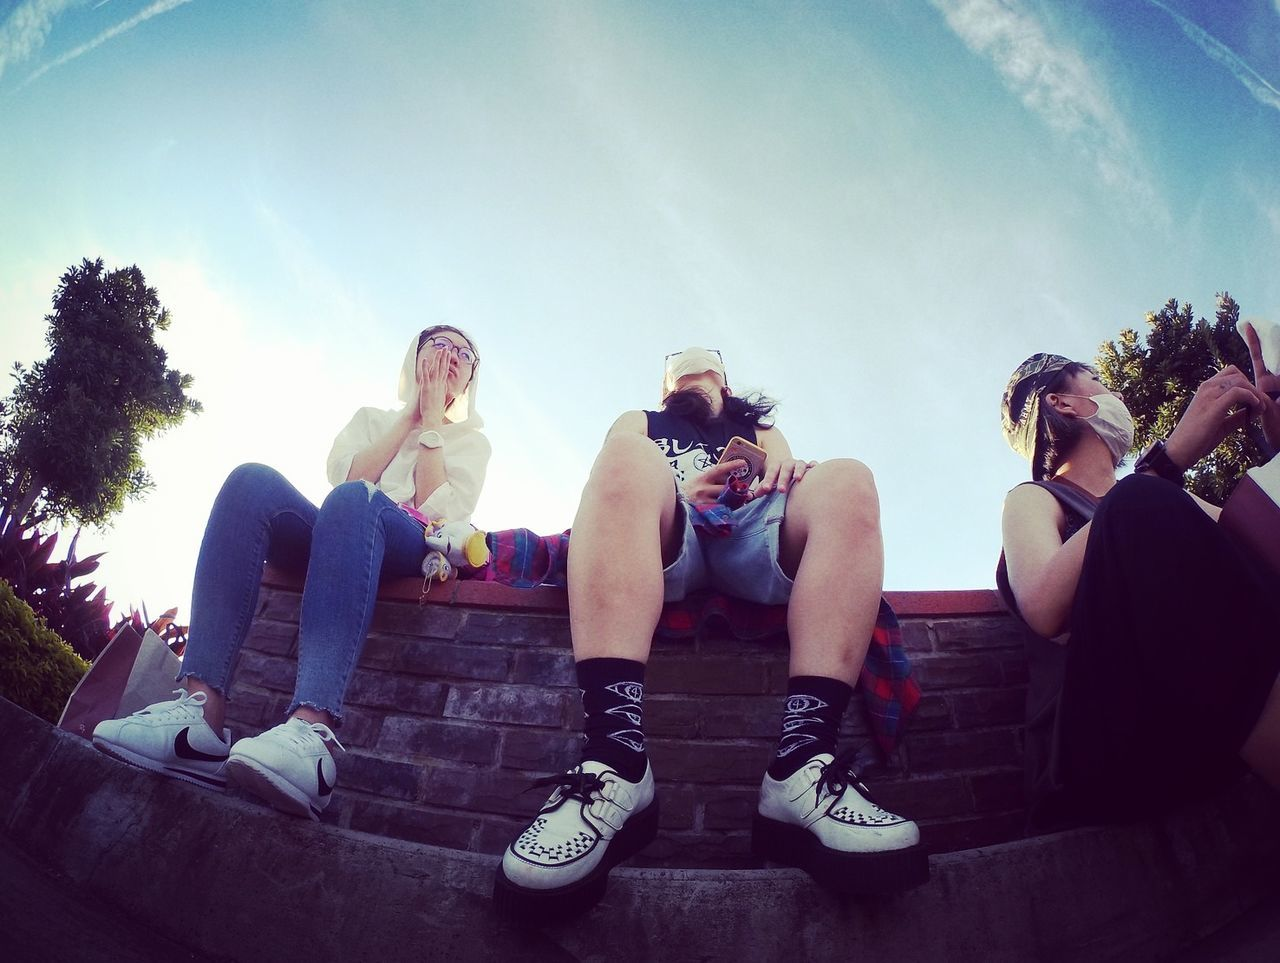 sitting, day, low angle view, shoe, men, outdoors, sky, togetherness, real people, friendship, tree, young adult, people